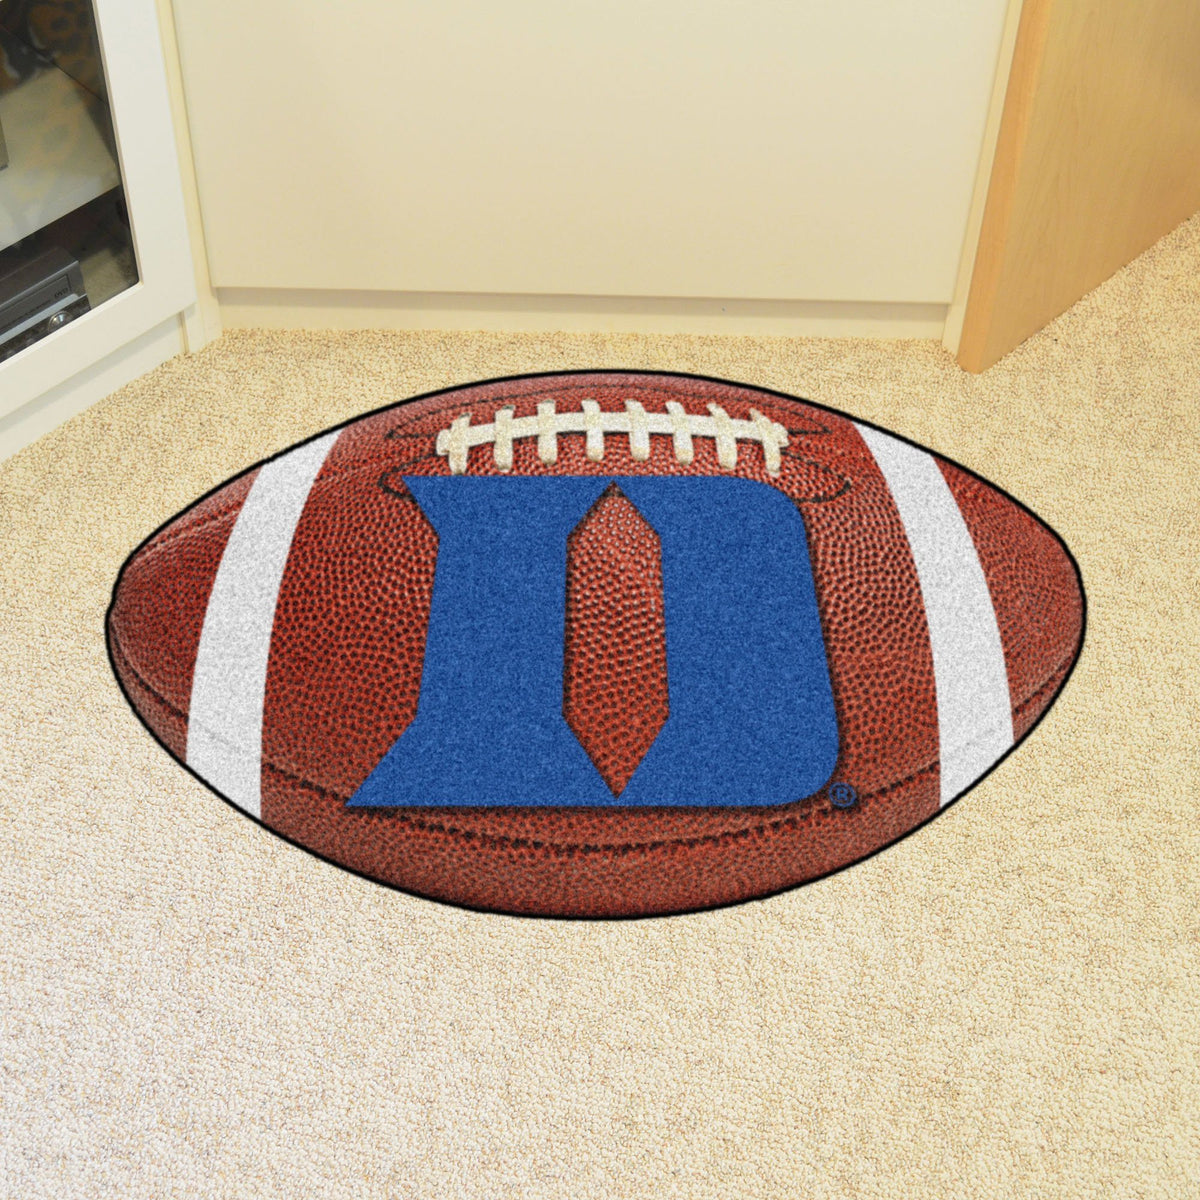 Collegiate - Football Mat: A - K Collegiate Mats, Rectangular Mats, Football Mat, Collegiate, Home Fan Mats Duke 2